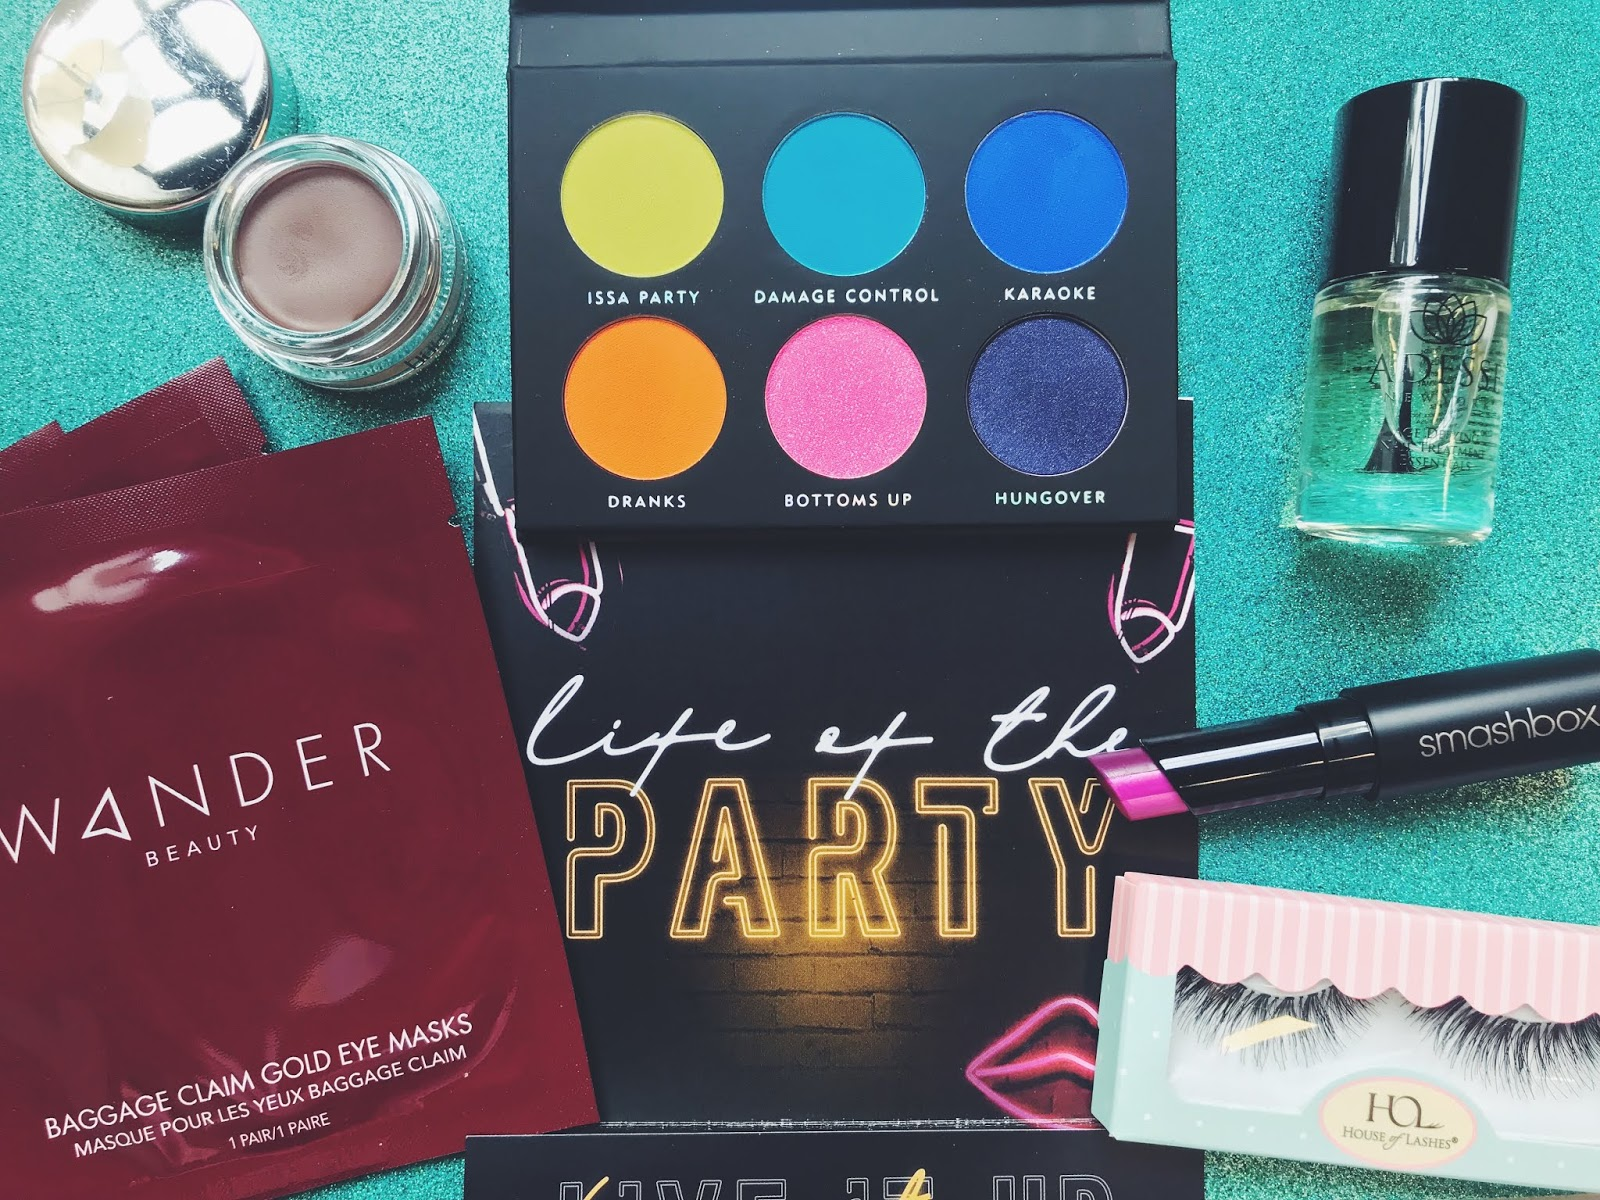 Boxycharm, Boxycharm Review, Boxycharm August 2018, subscription service review, Nashville beauty blog, Nashville beauty blogger, beauty buzz, beauty, subscription box, Wander Beauty, Wander Beauty Baggage Claim Gold Eye Masks, House of Lashes, House of Lashes Temptress Lashes, Smashbox, Smashbox Be Legendary Triple Tone Lipstick in Berry Ombre, Adesse New York, Adesse New York Sweet Almond Cuticle Oil, Laura Lee Los Angeles, Laura Lee Los Angeles Party Animal Palette, Bang Beauty, Bang Beauty Chocolate Eyeliner,